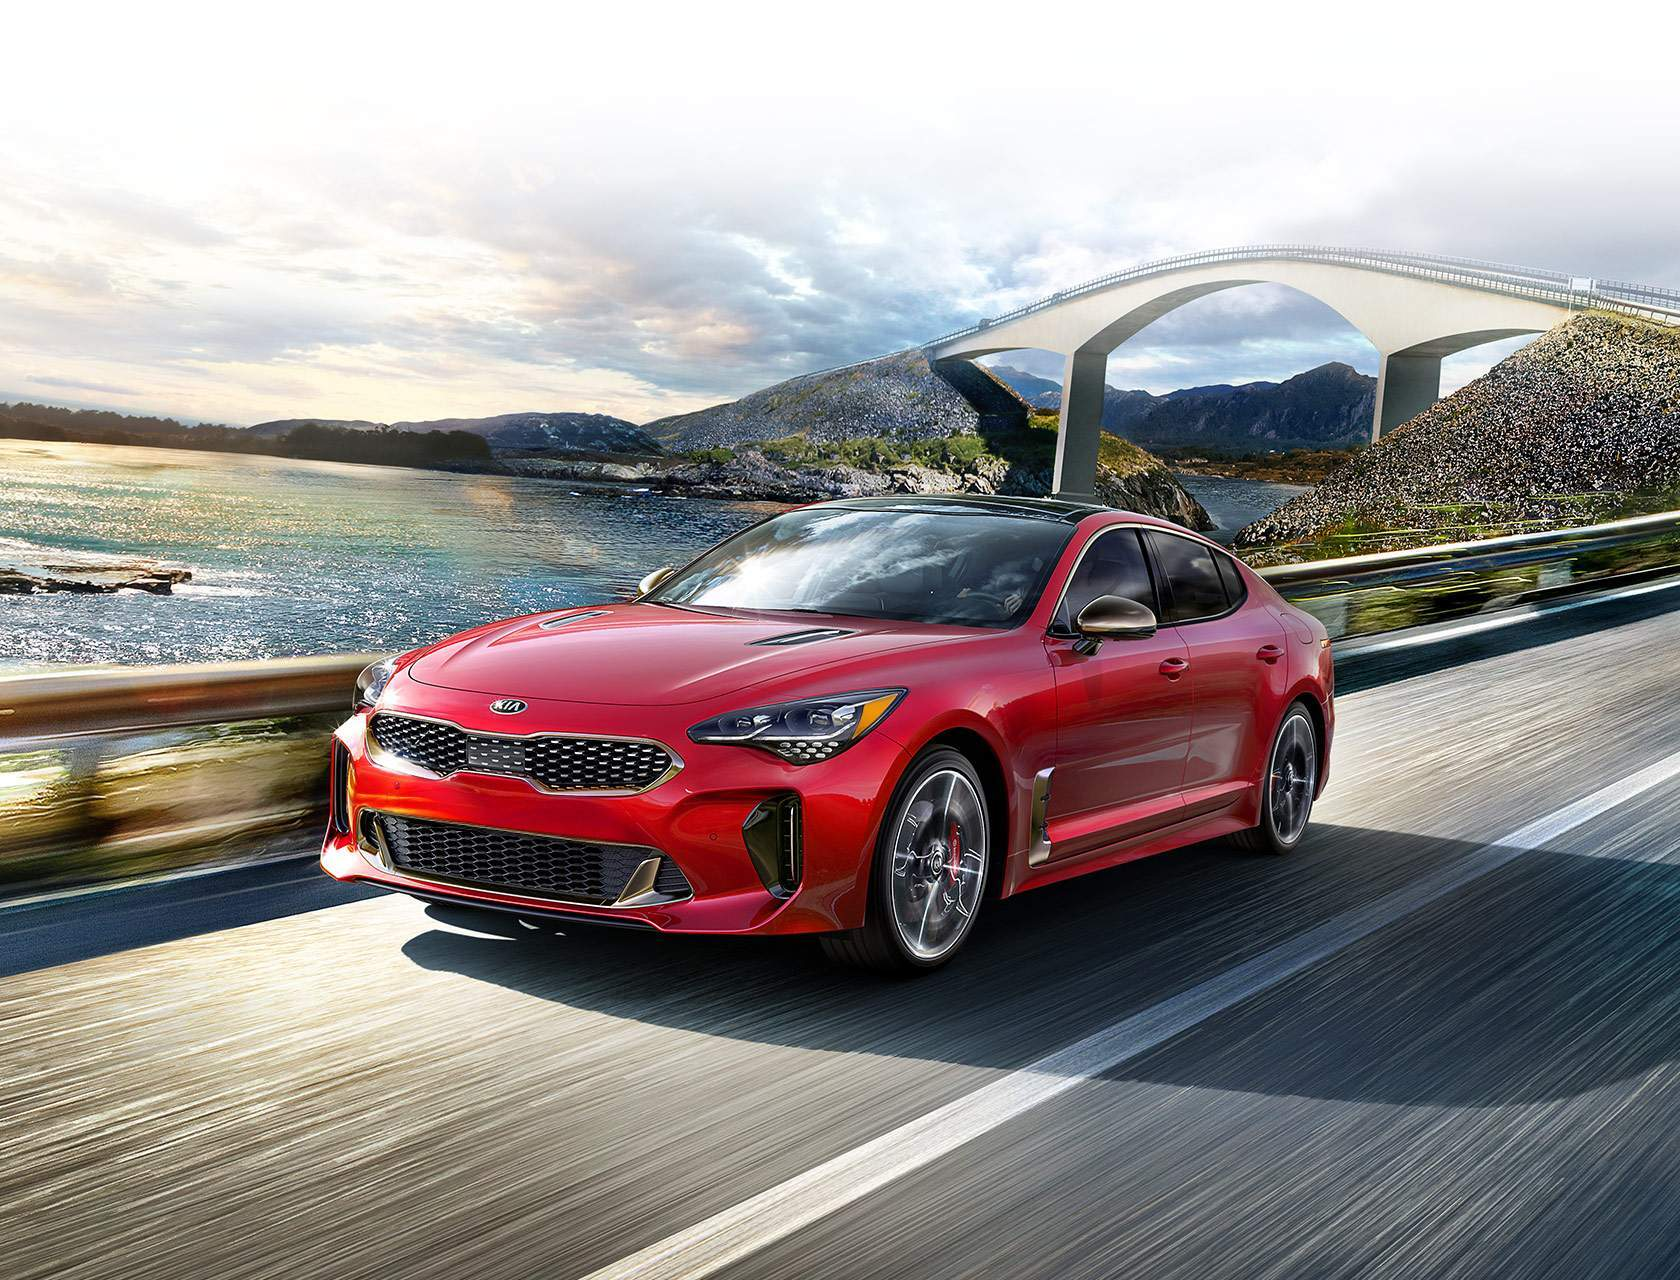 2018 Kia Stinger in Garden Grove, CA